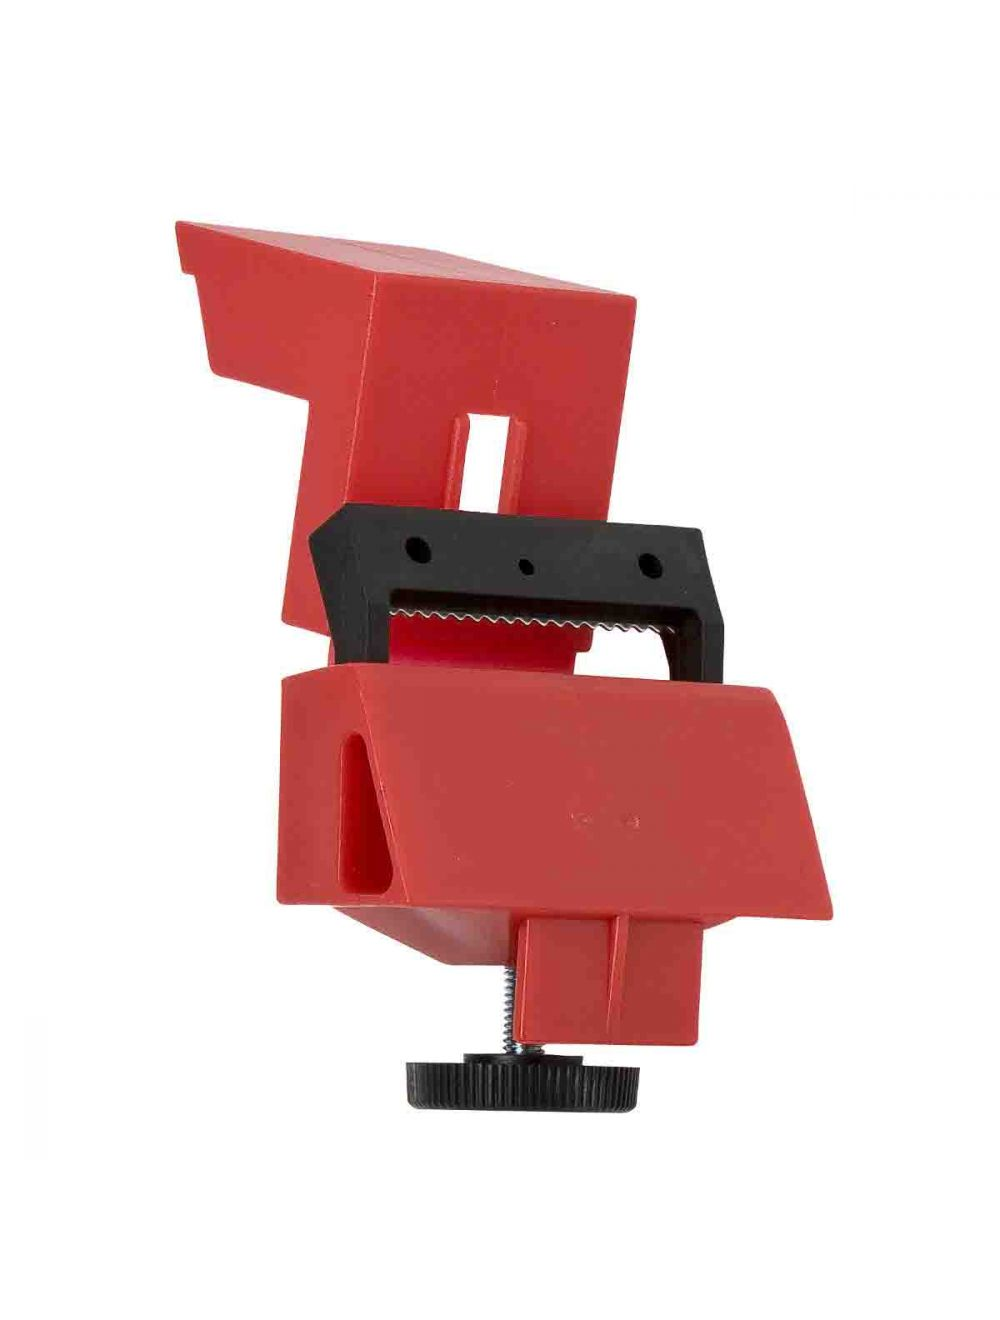 No Lock Needed 148686 480//600 Volt Clamp-On Single-Pole Breaker Lockout Device with Detachable Cleat Pack of 25 Red Brady Taglock Circuit Breaker Lockout Devices